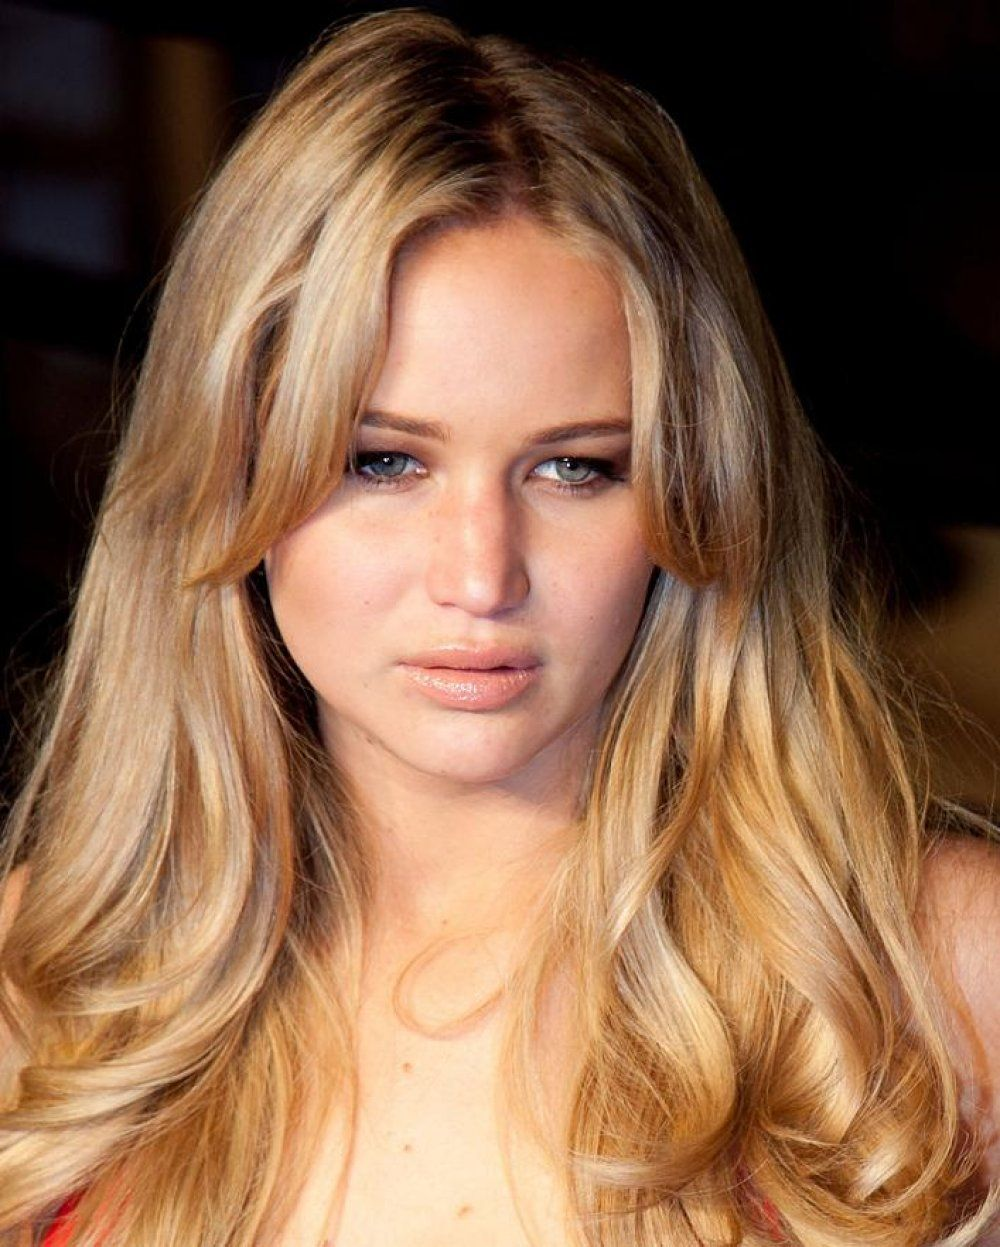 Image Result For Jennifer Lawrence Hair Color Haircuts For Long Hair With Layers Long Hair With Bangs Layered Haircuts With Bangs